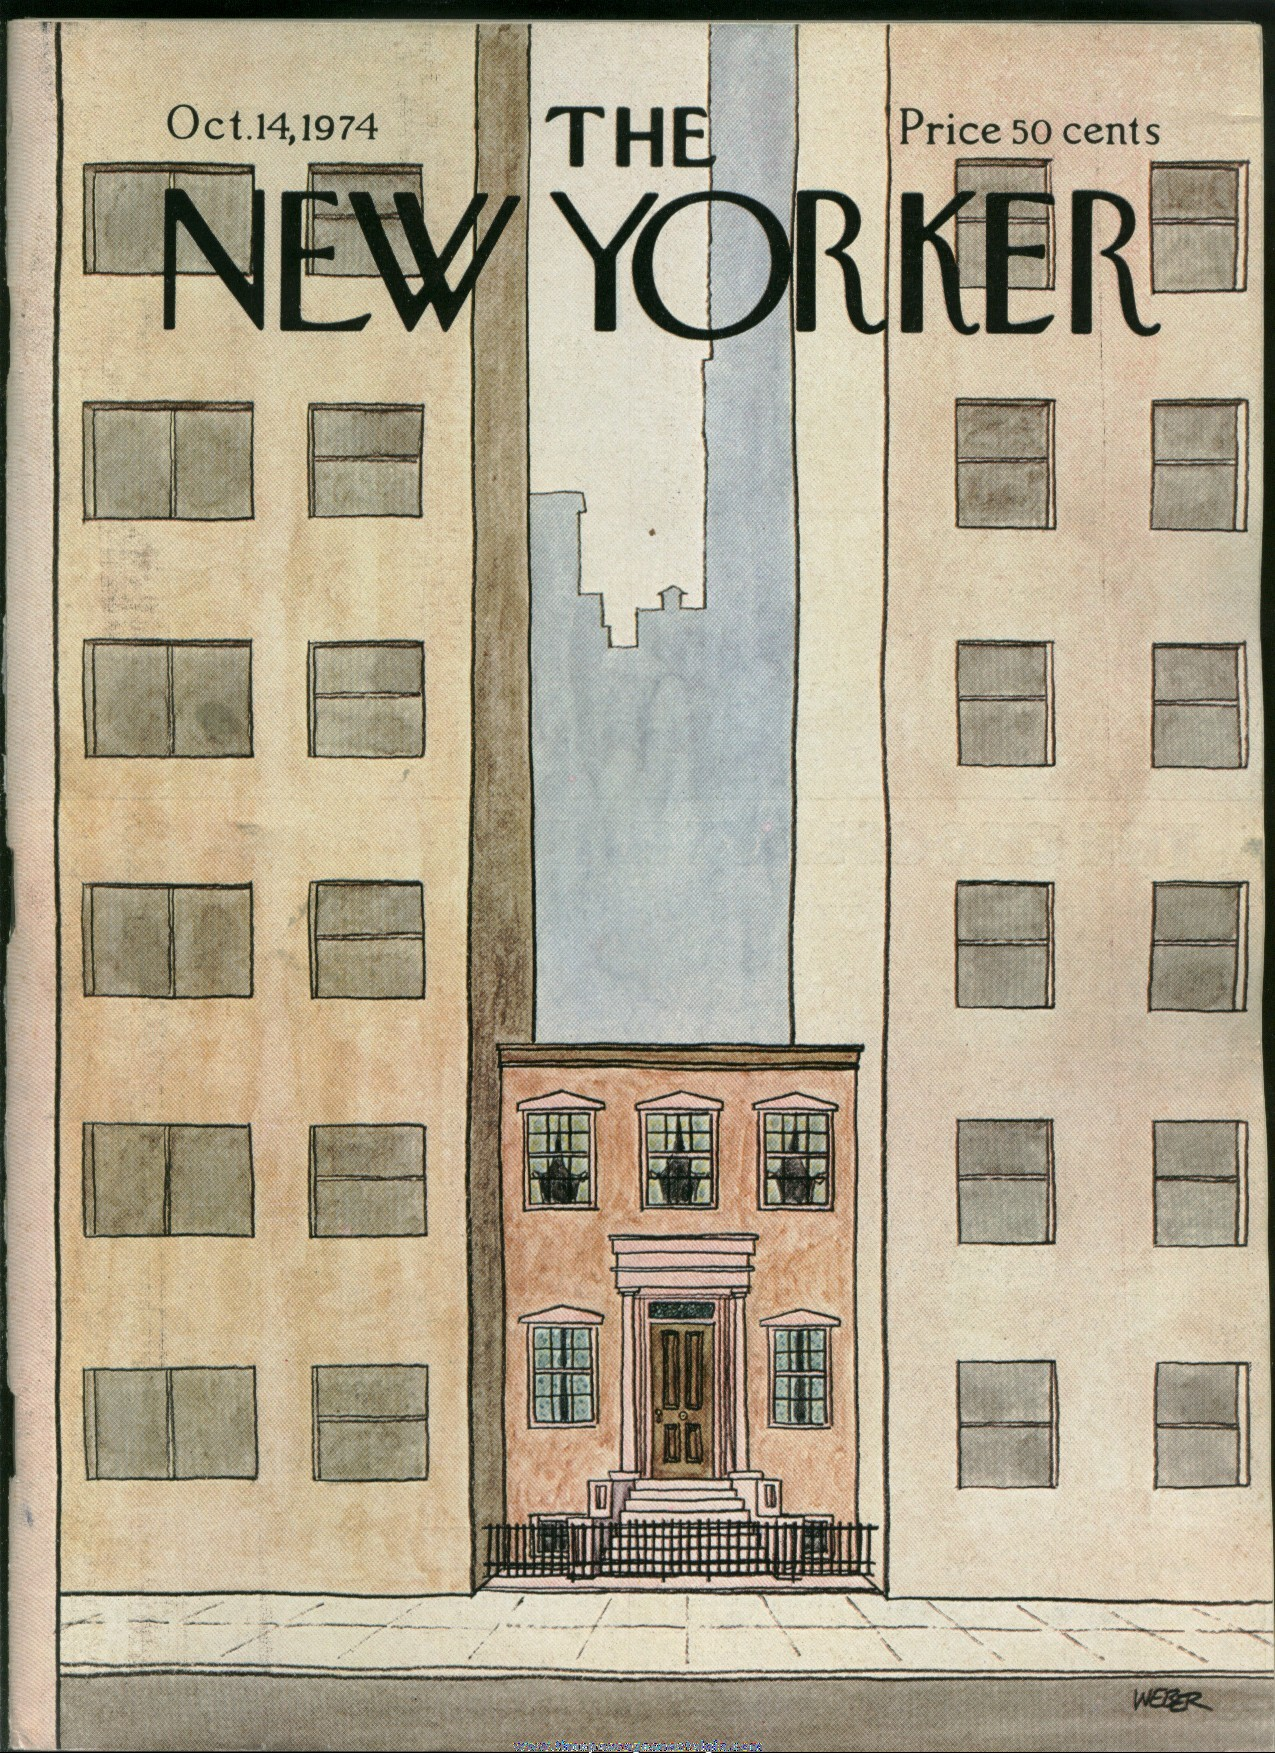 New Yorker Magazine - October 14, 1974 - Cover by Robert Weber